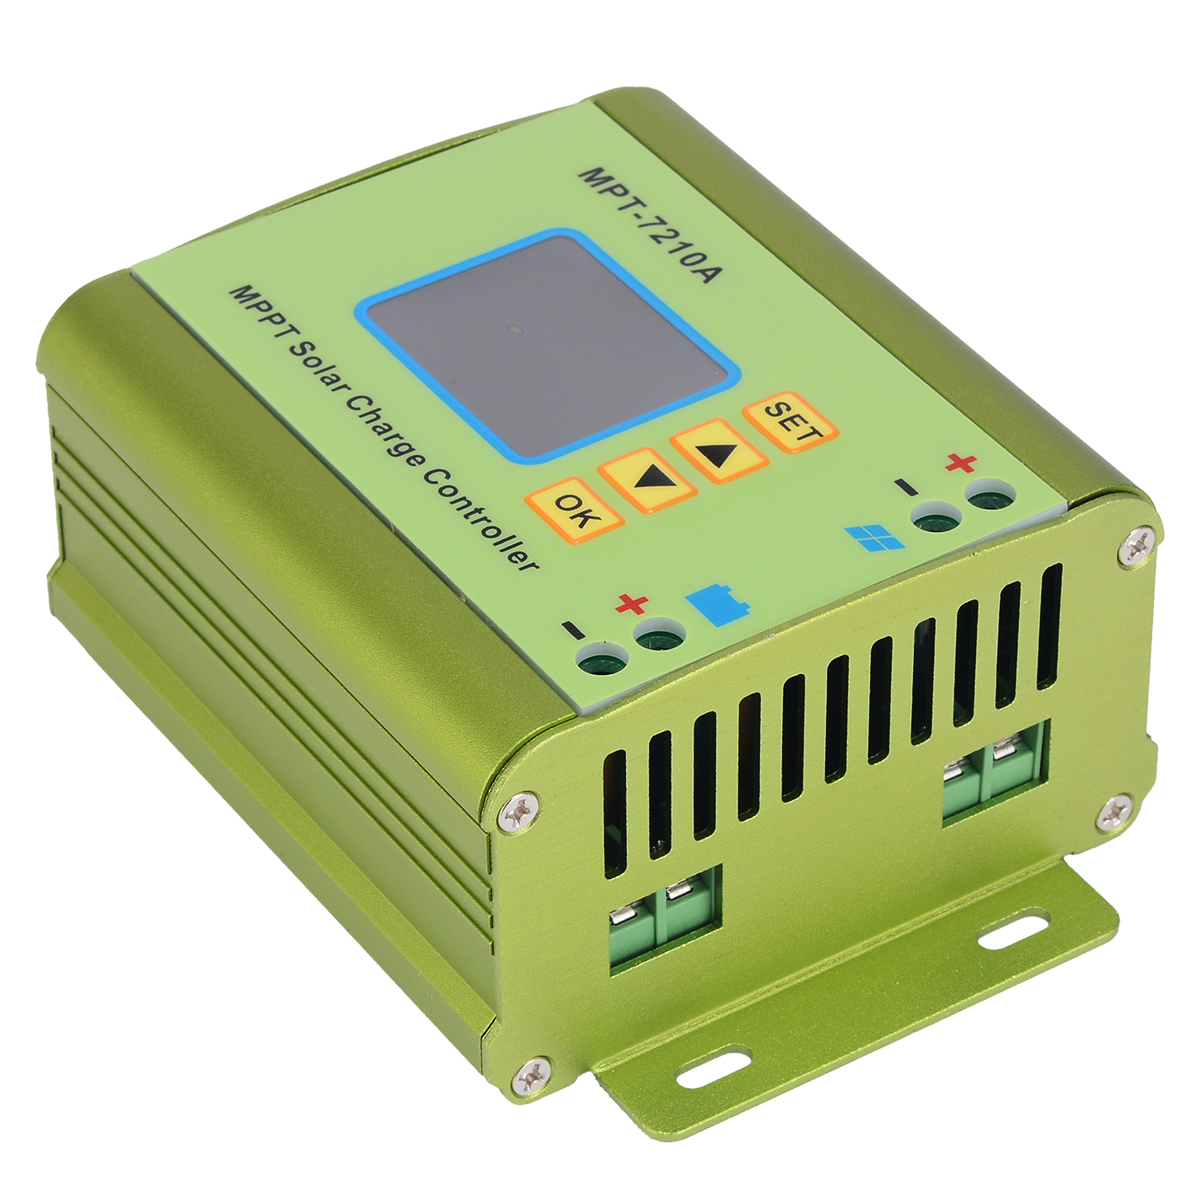 MPPT Solar Panel Battery Charge Controller LCD Display Solar Controllers Regulator For 24 36 48 60